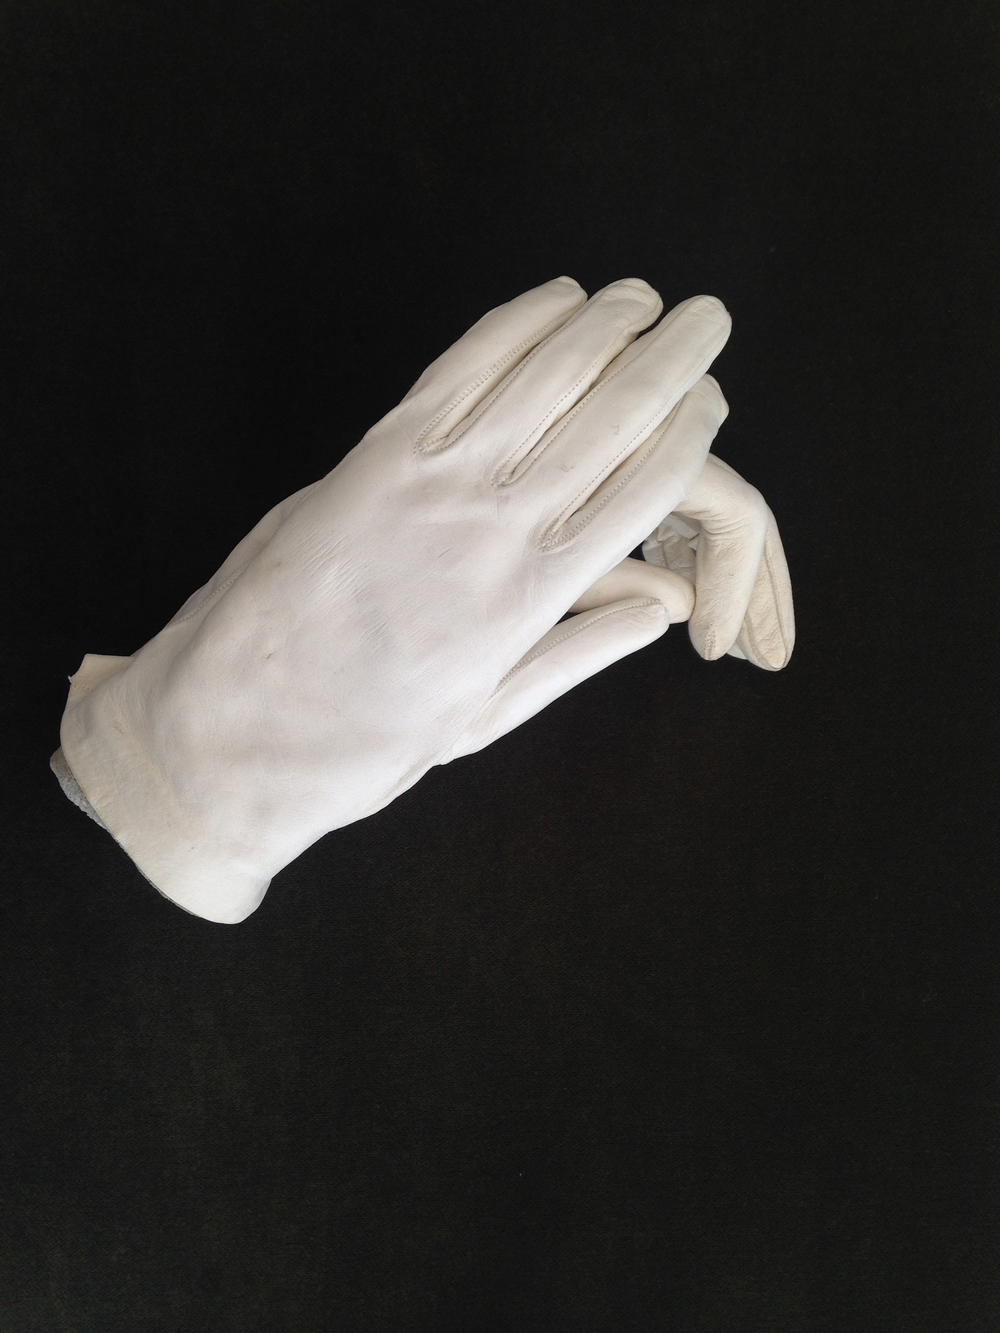 AM, Ame Henderson, Fortune Teller, The Hand and the Glove.jpg